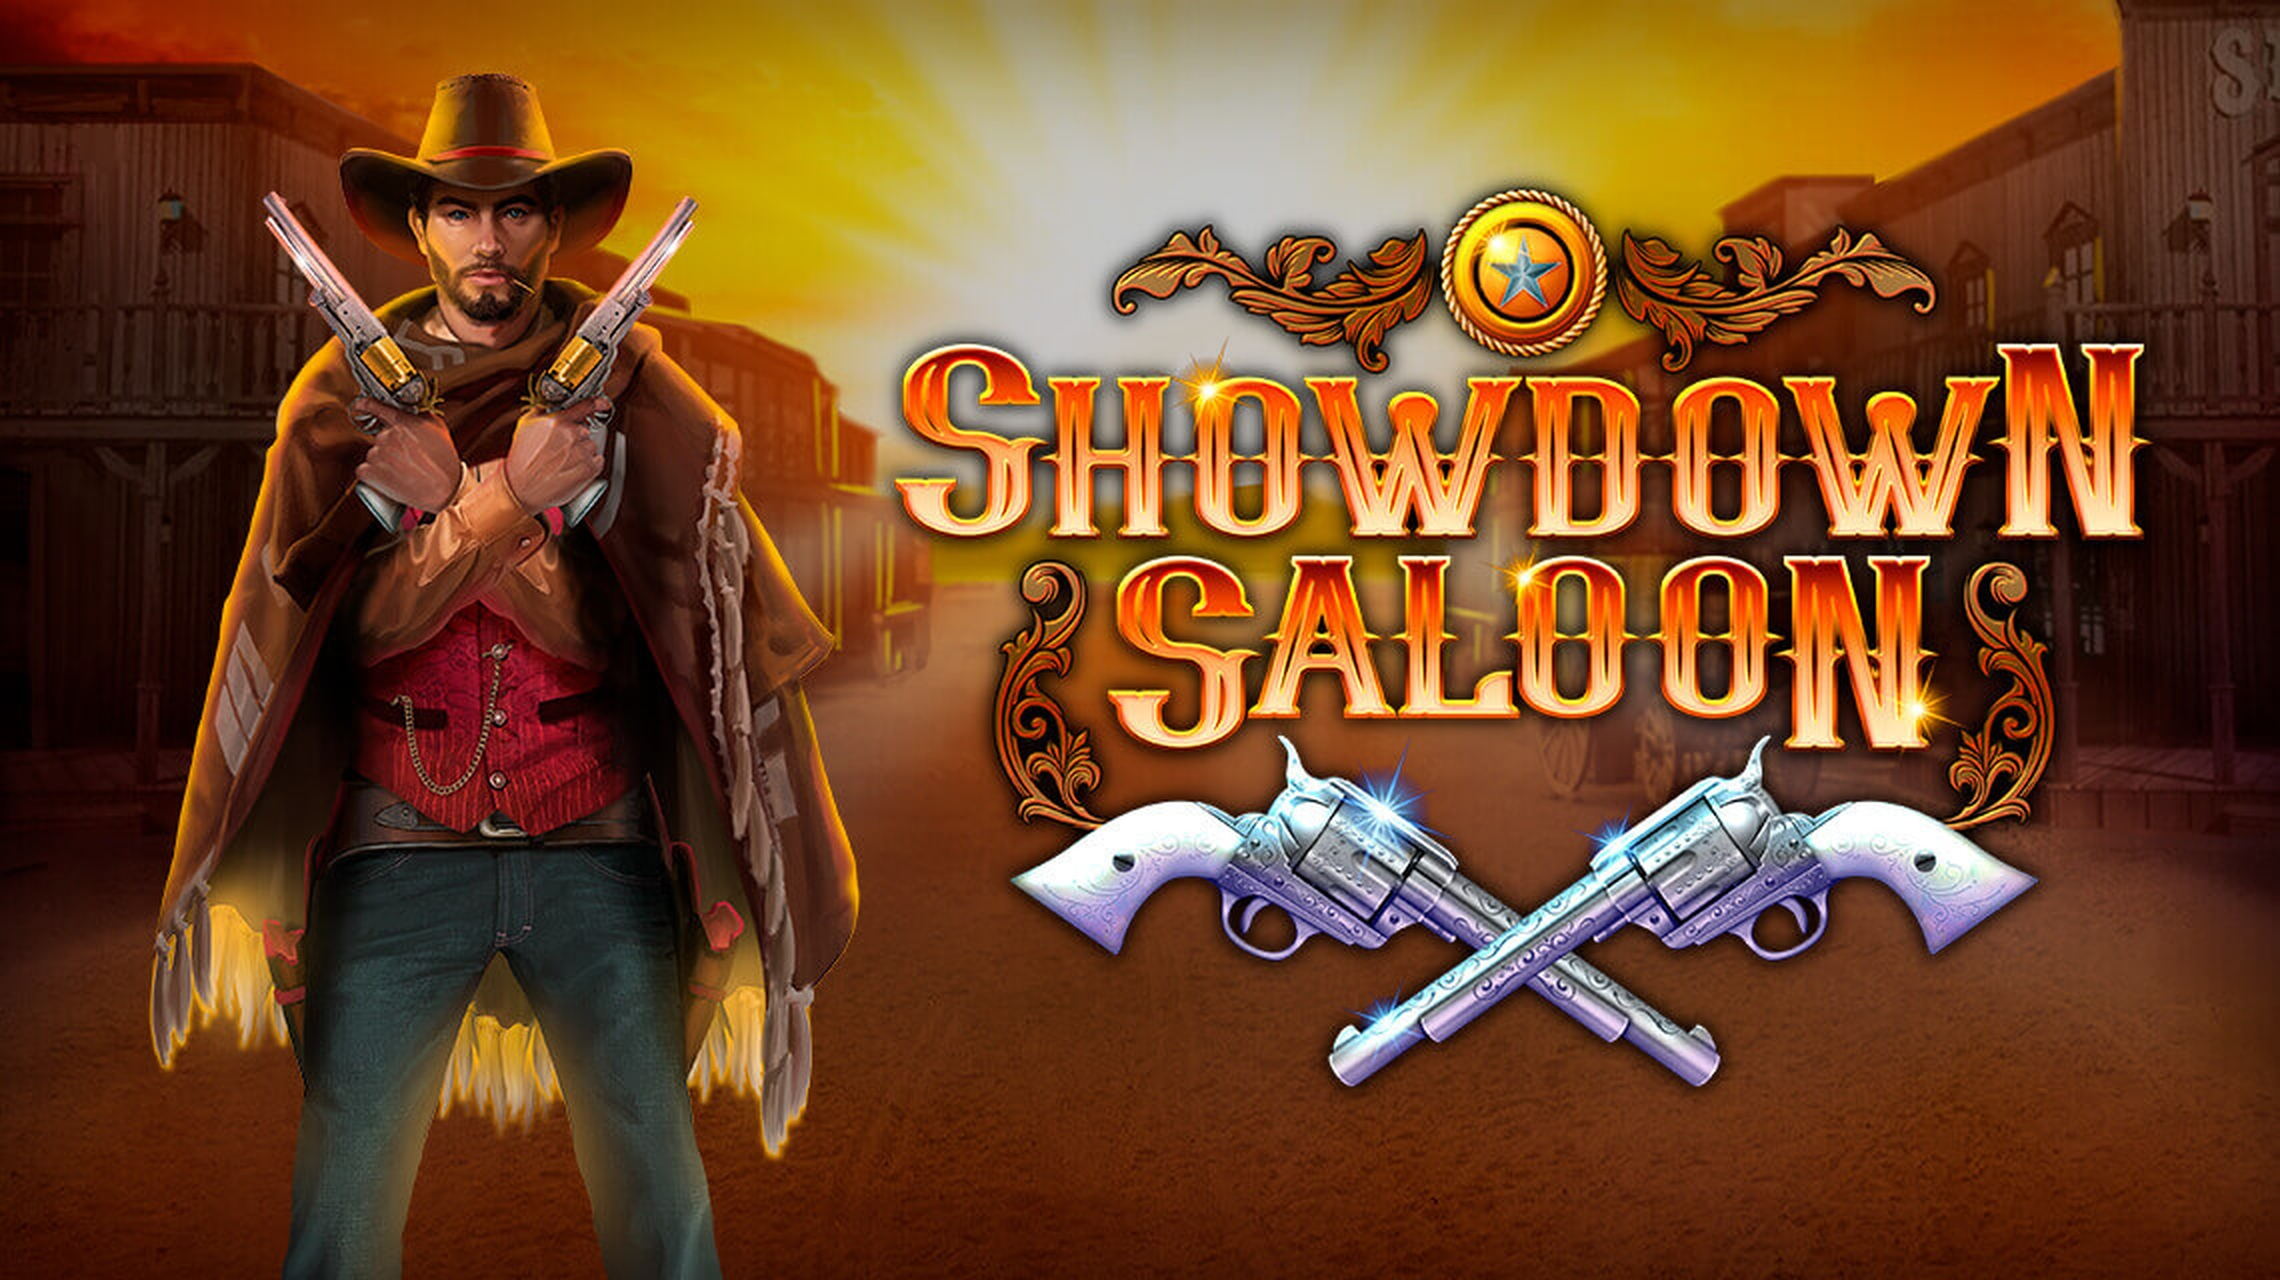 Se Showdown Saloon Online Slot Demo Game, Fortune Factory Studios